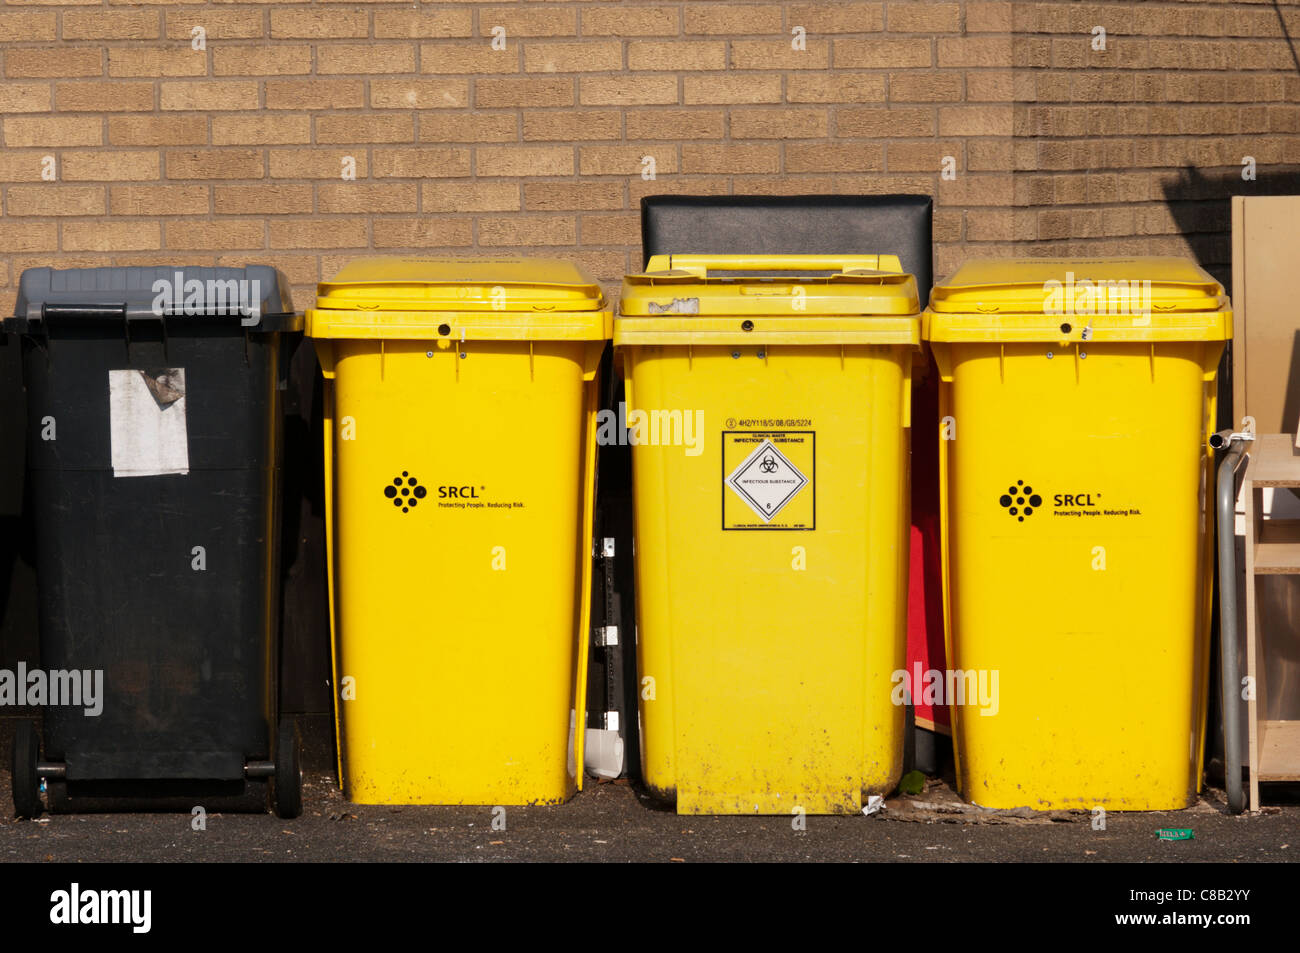 Yellow wheelie bins for clinical waste or infectious substances. - Stock Image